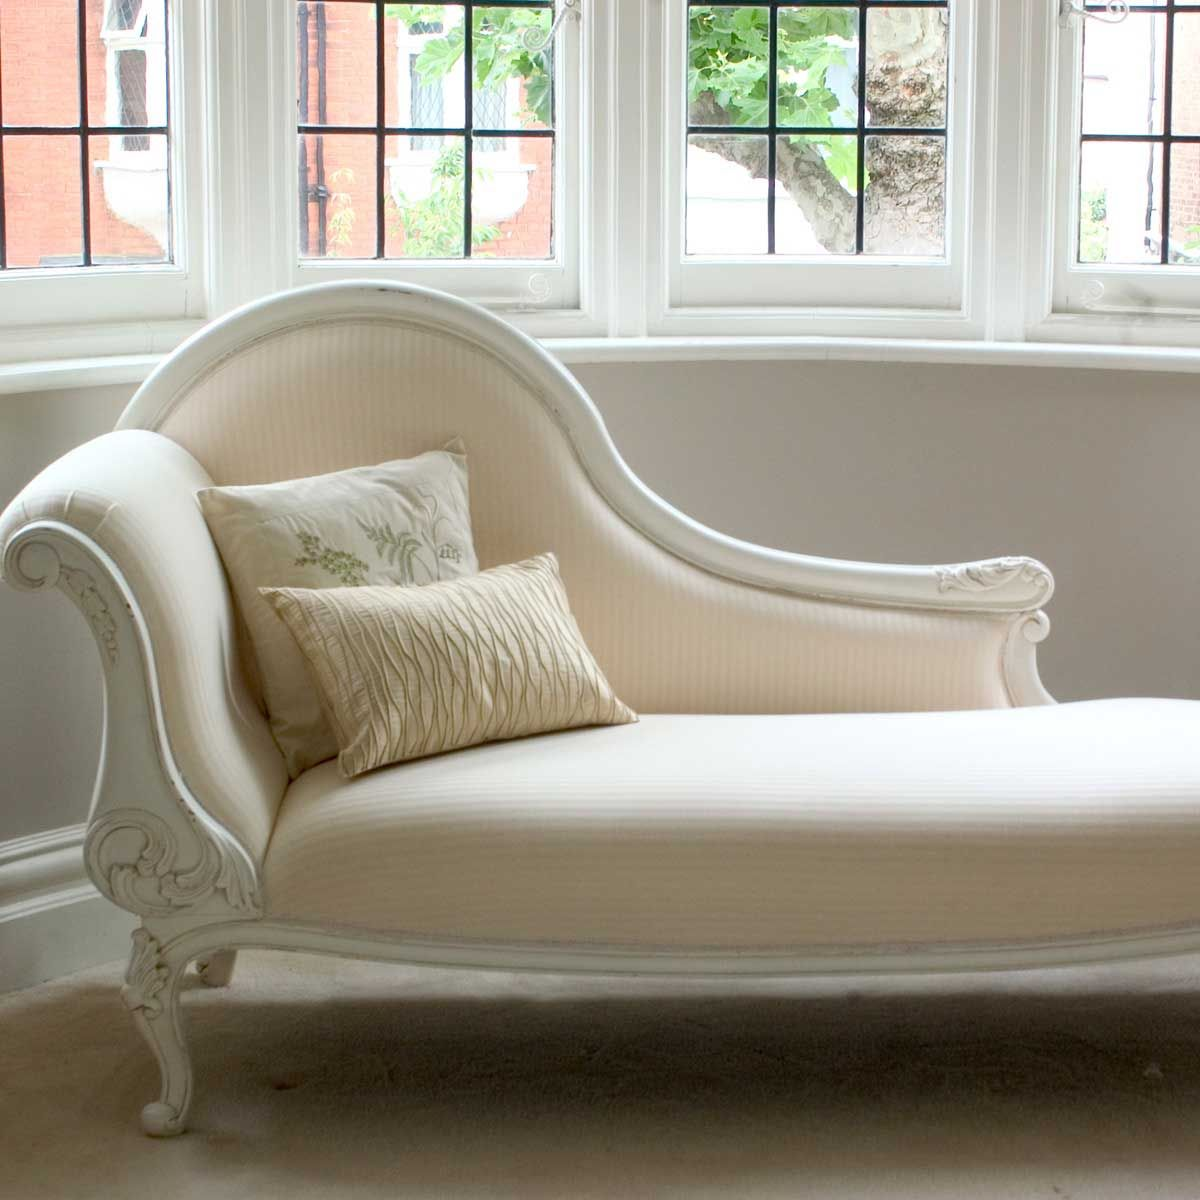 Classical White Chaise Longue   Sweetpea U0026 Willow London     My Dream  Couch. Bedroom Lounge Chairs ...